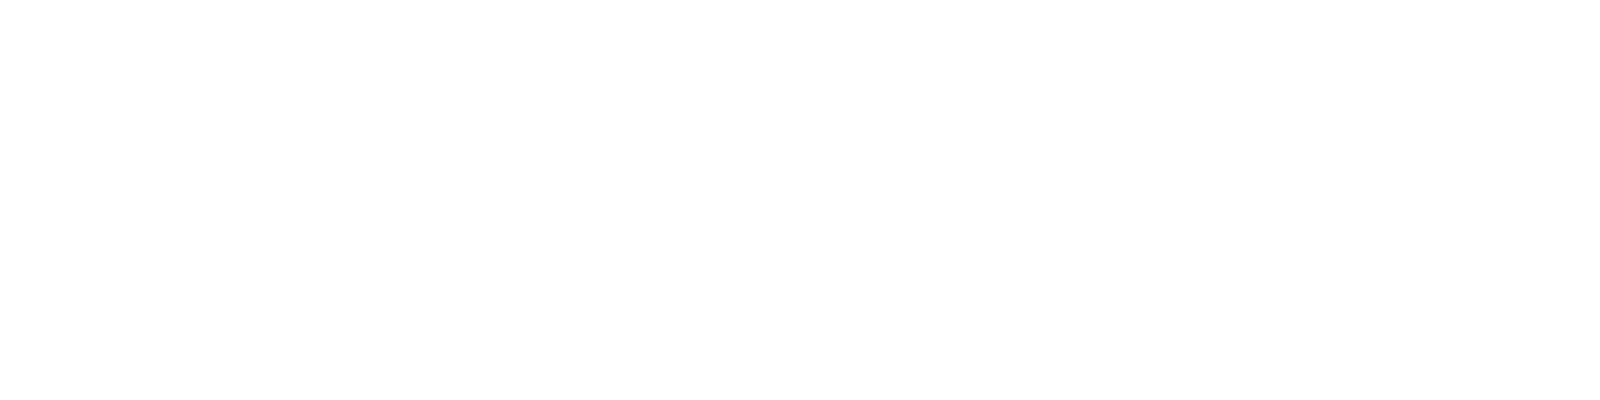 GD Compassion Culture Series Podcast